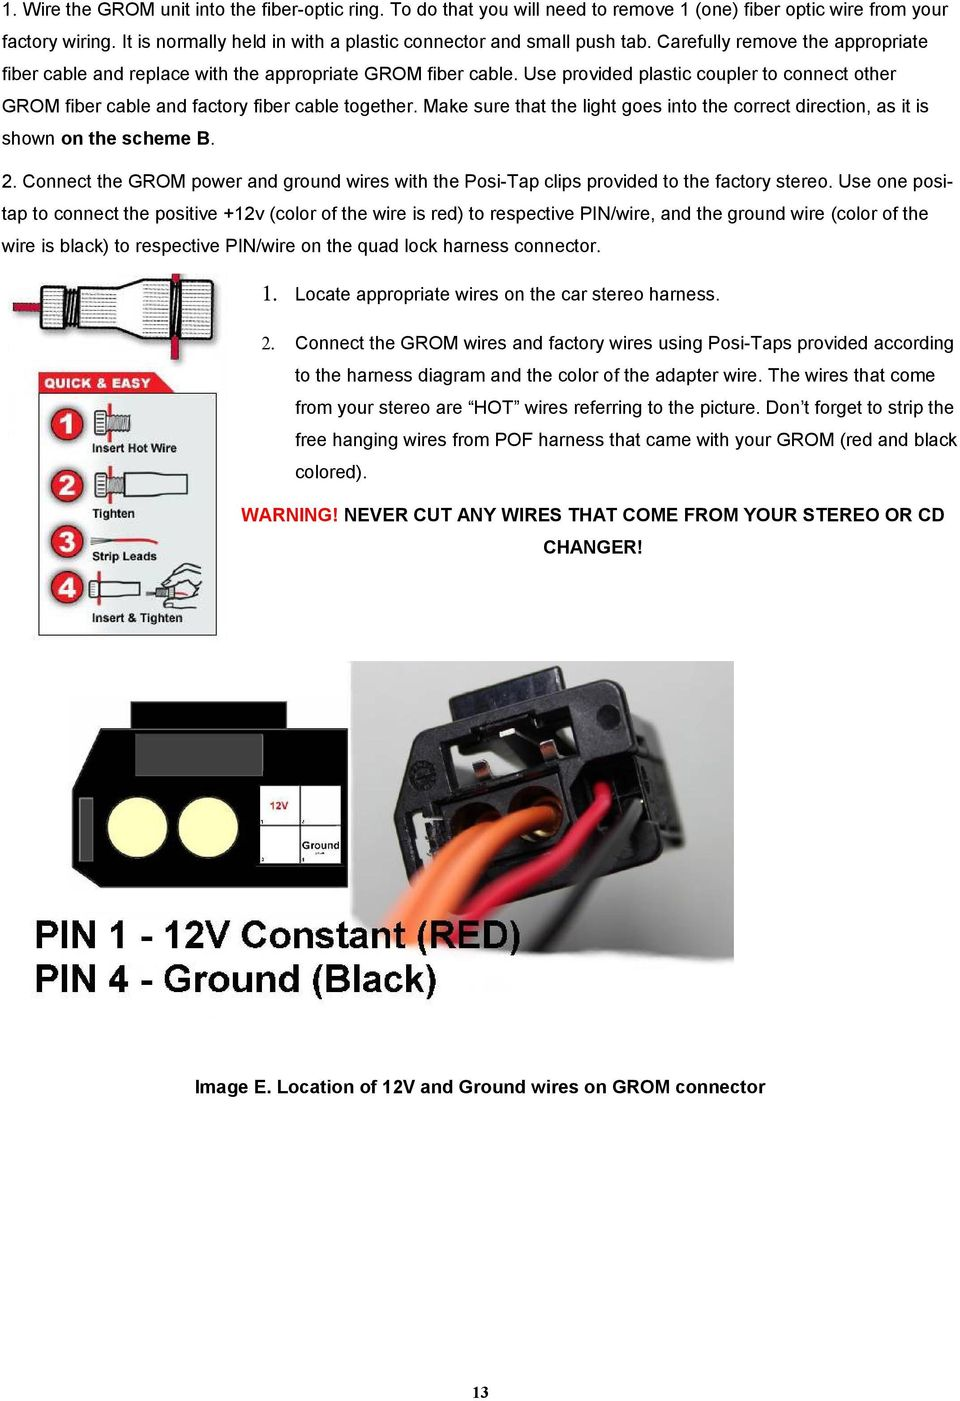 Grom Mst4 Mp3 Usb Android Iphone Ipod Ipad Car Stereo Adapter Kit Connector Wiring Use Provided Plastic Coupler To Connect Other Fiber Cable And Factory Together